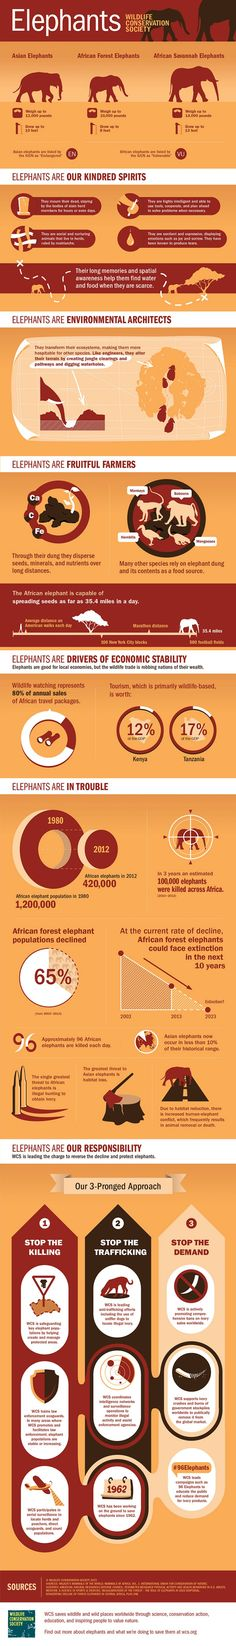 On World Elephant Day, 6 Big Reasons to Save the Species